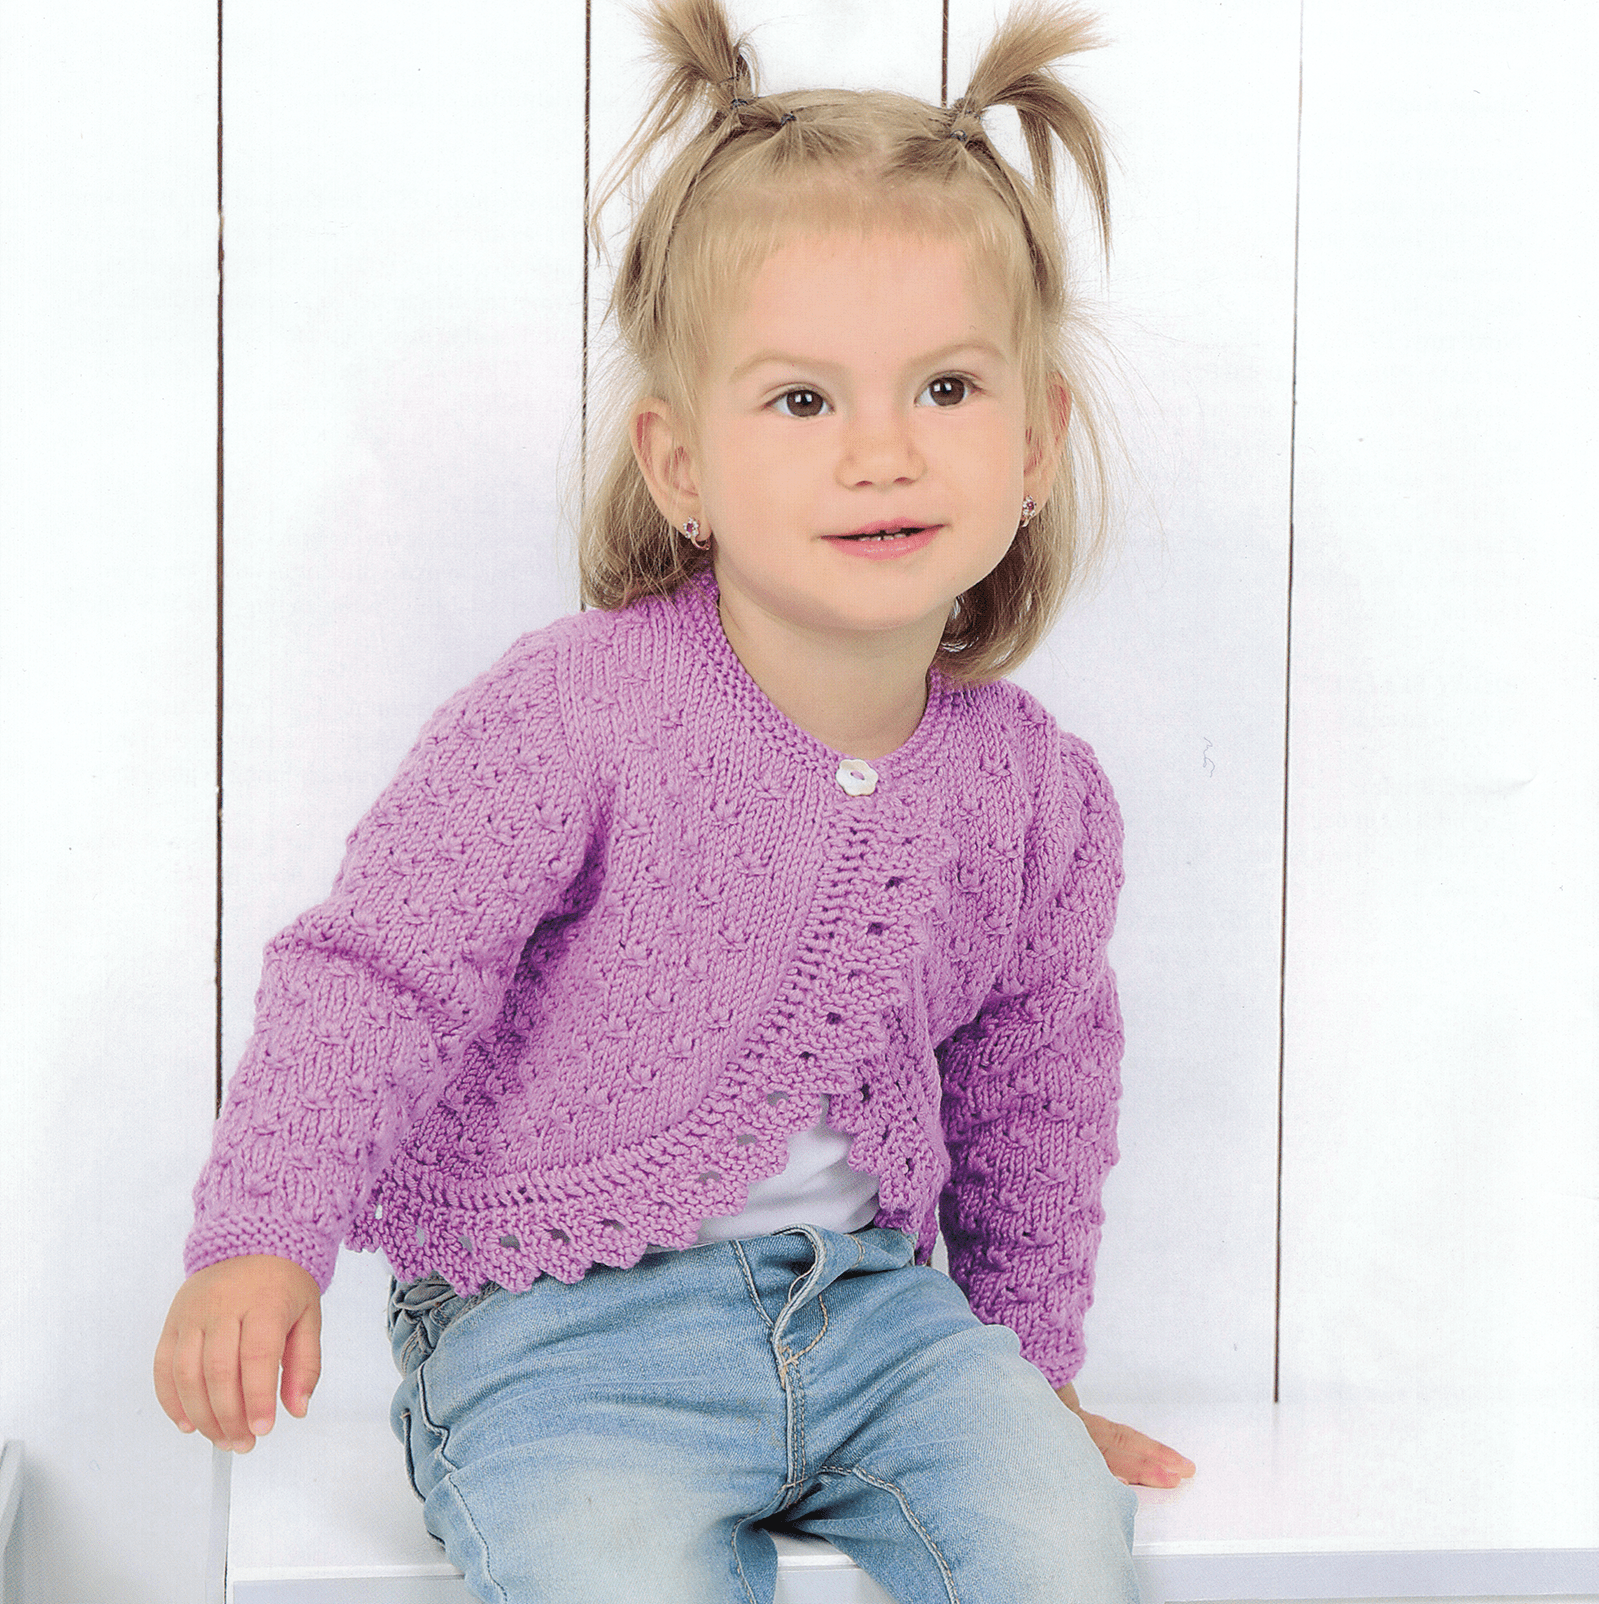 Felixa Baby Sweater + FREE BONUS book of baby patterns!*